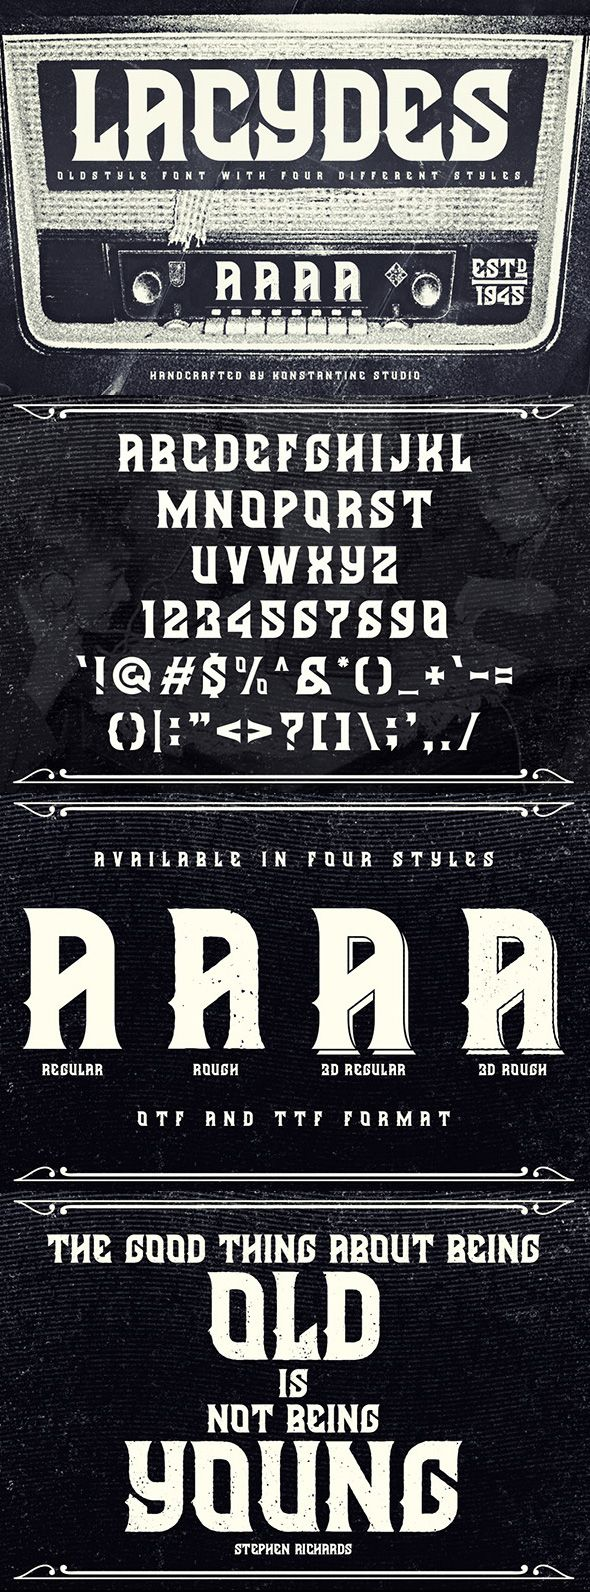 Best 25 best serif fonts ideas on pinterest best sans serif lacydes serif fonts download here httpsgraphicriver thecheapjerseys Gallery